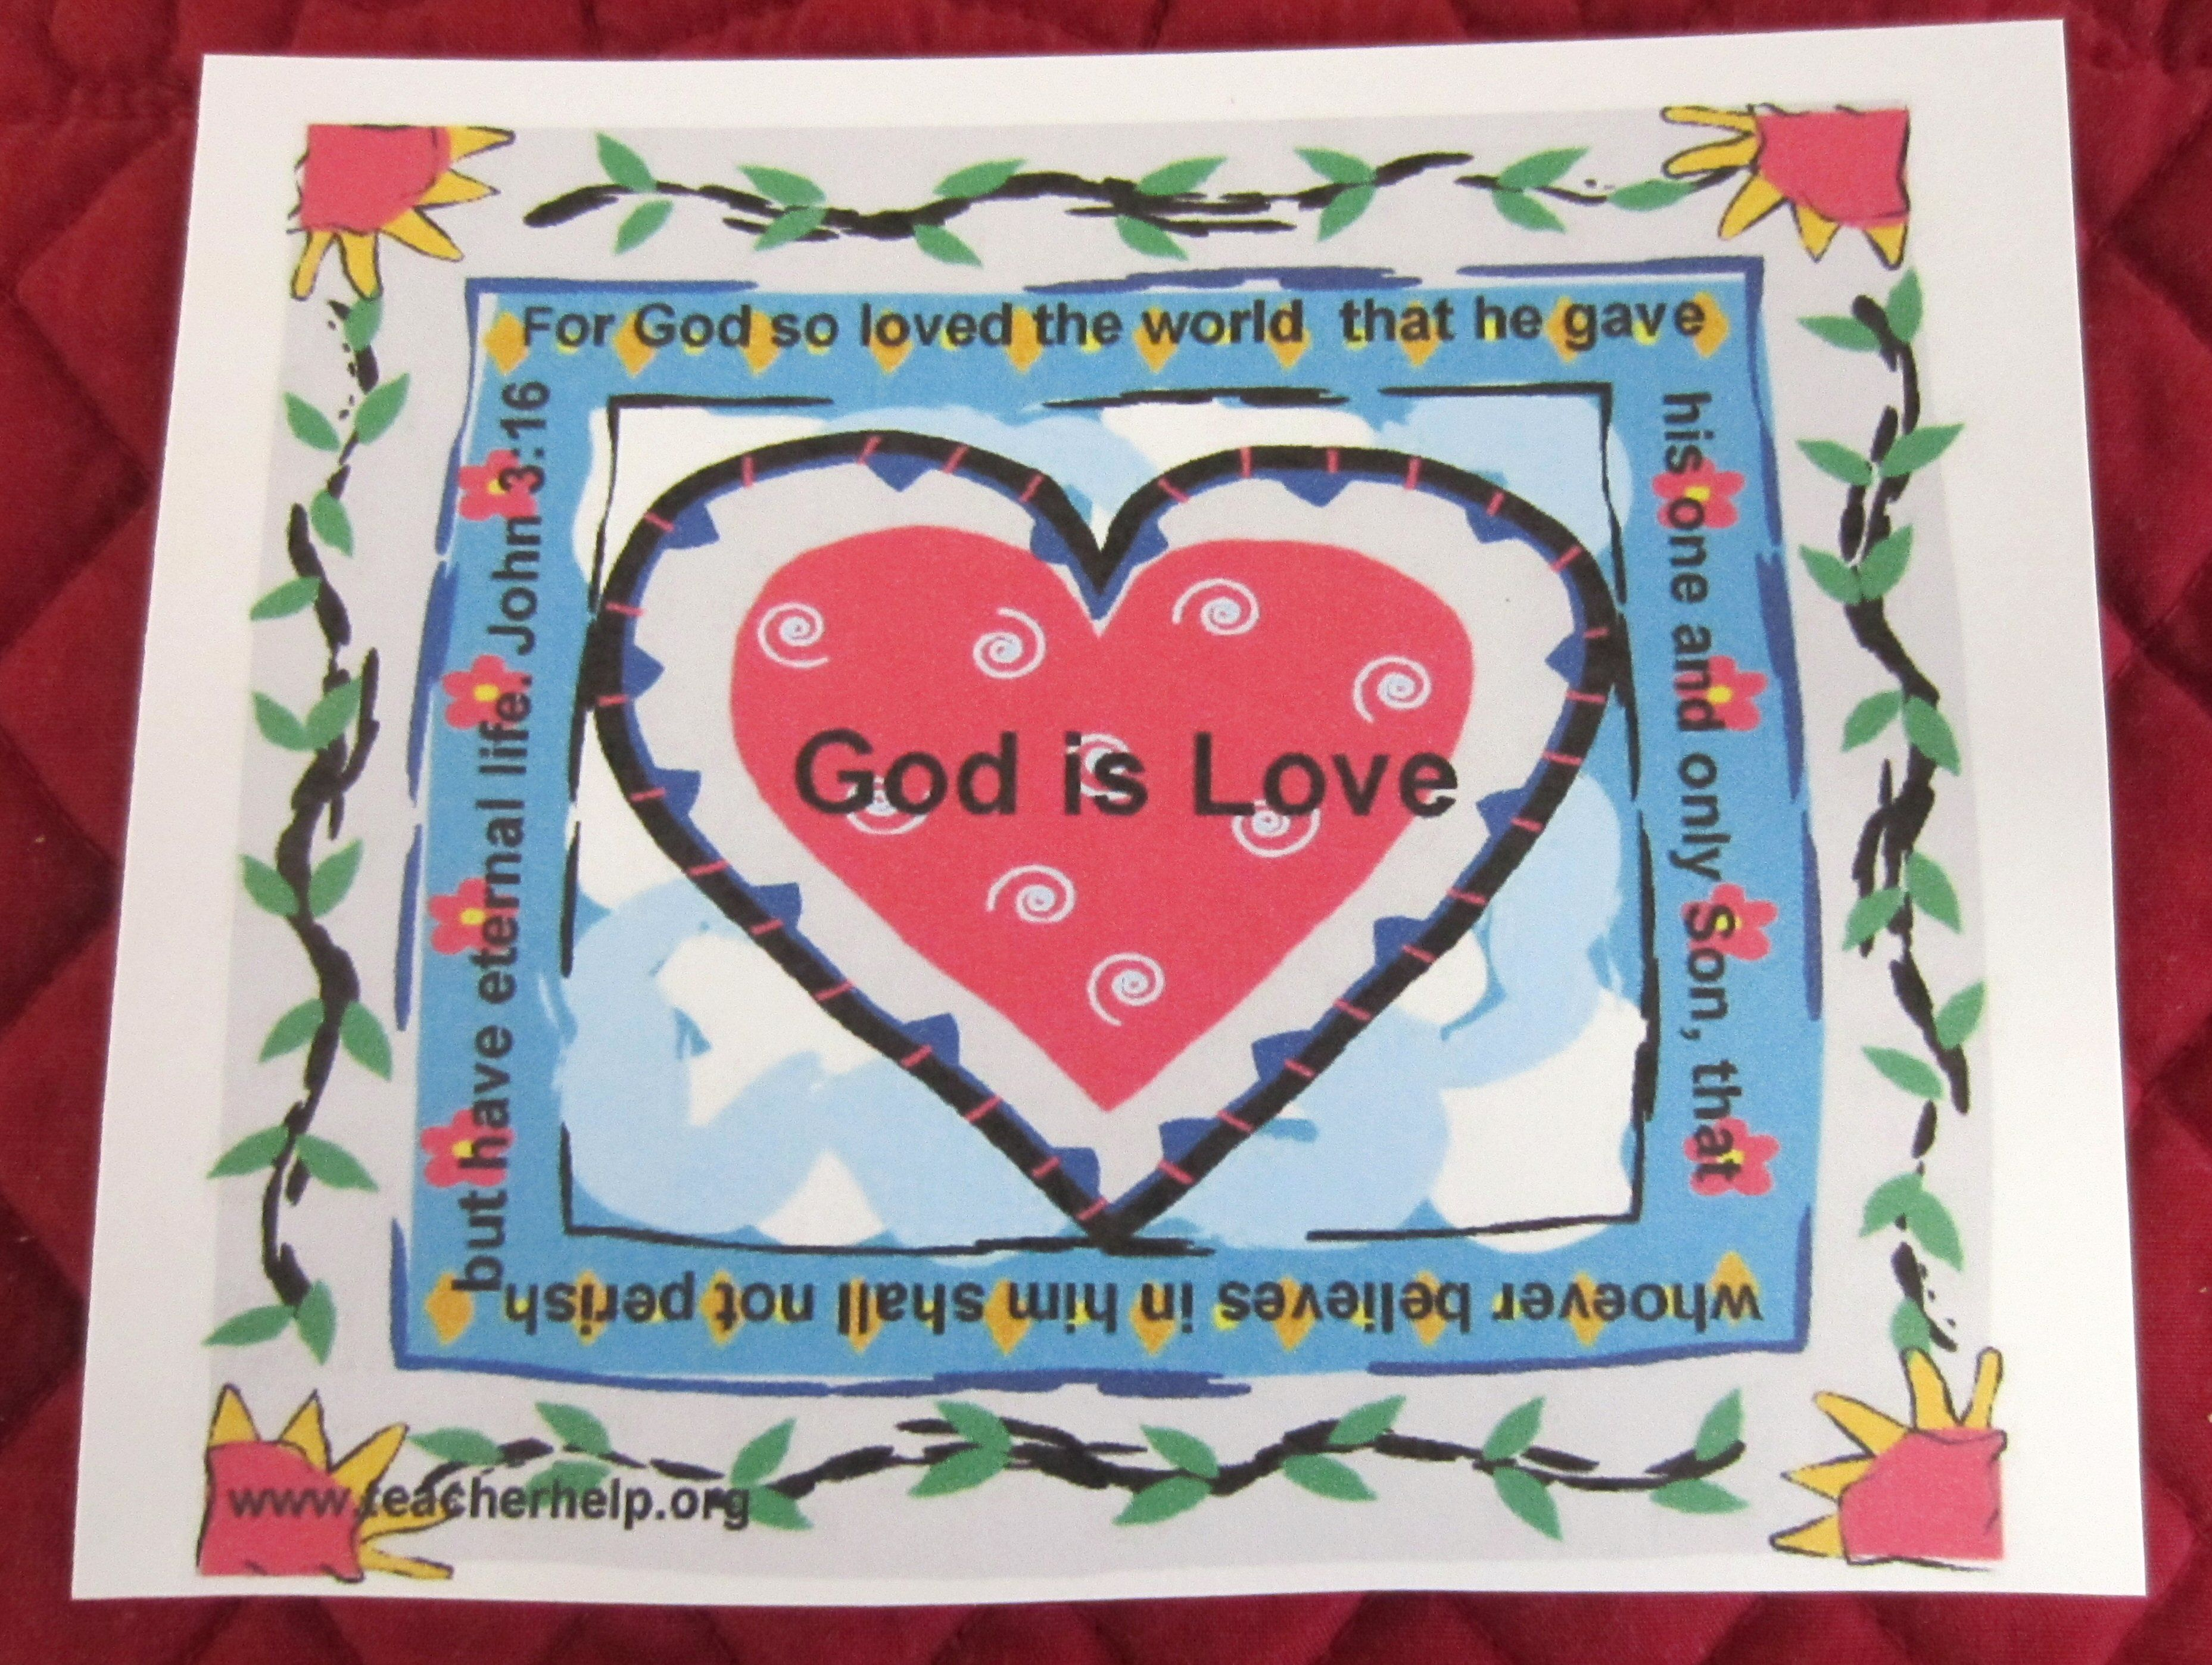 A Valentine Card With God Is Love In The Center And John 3